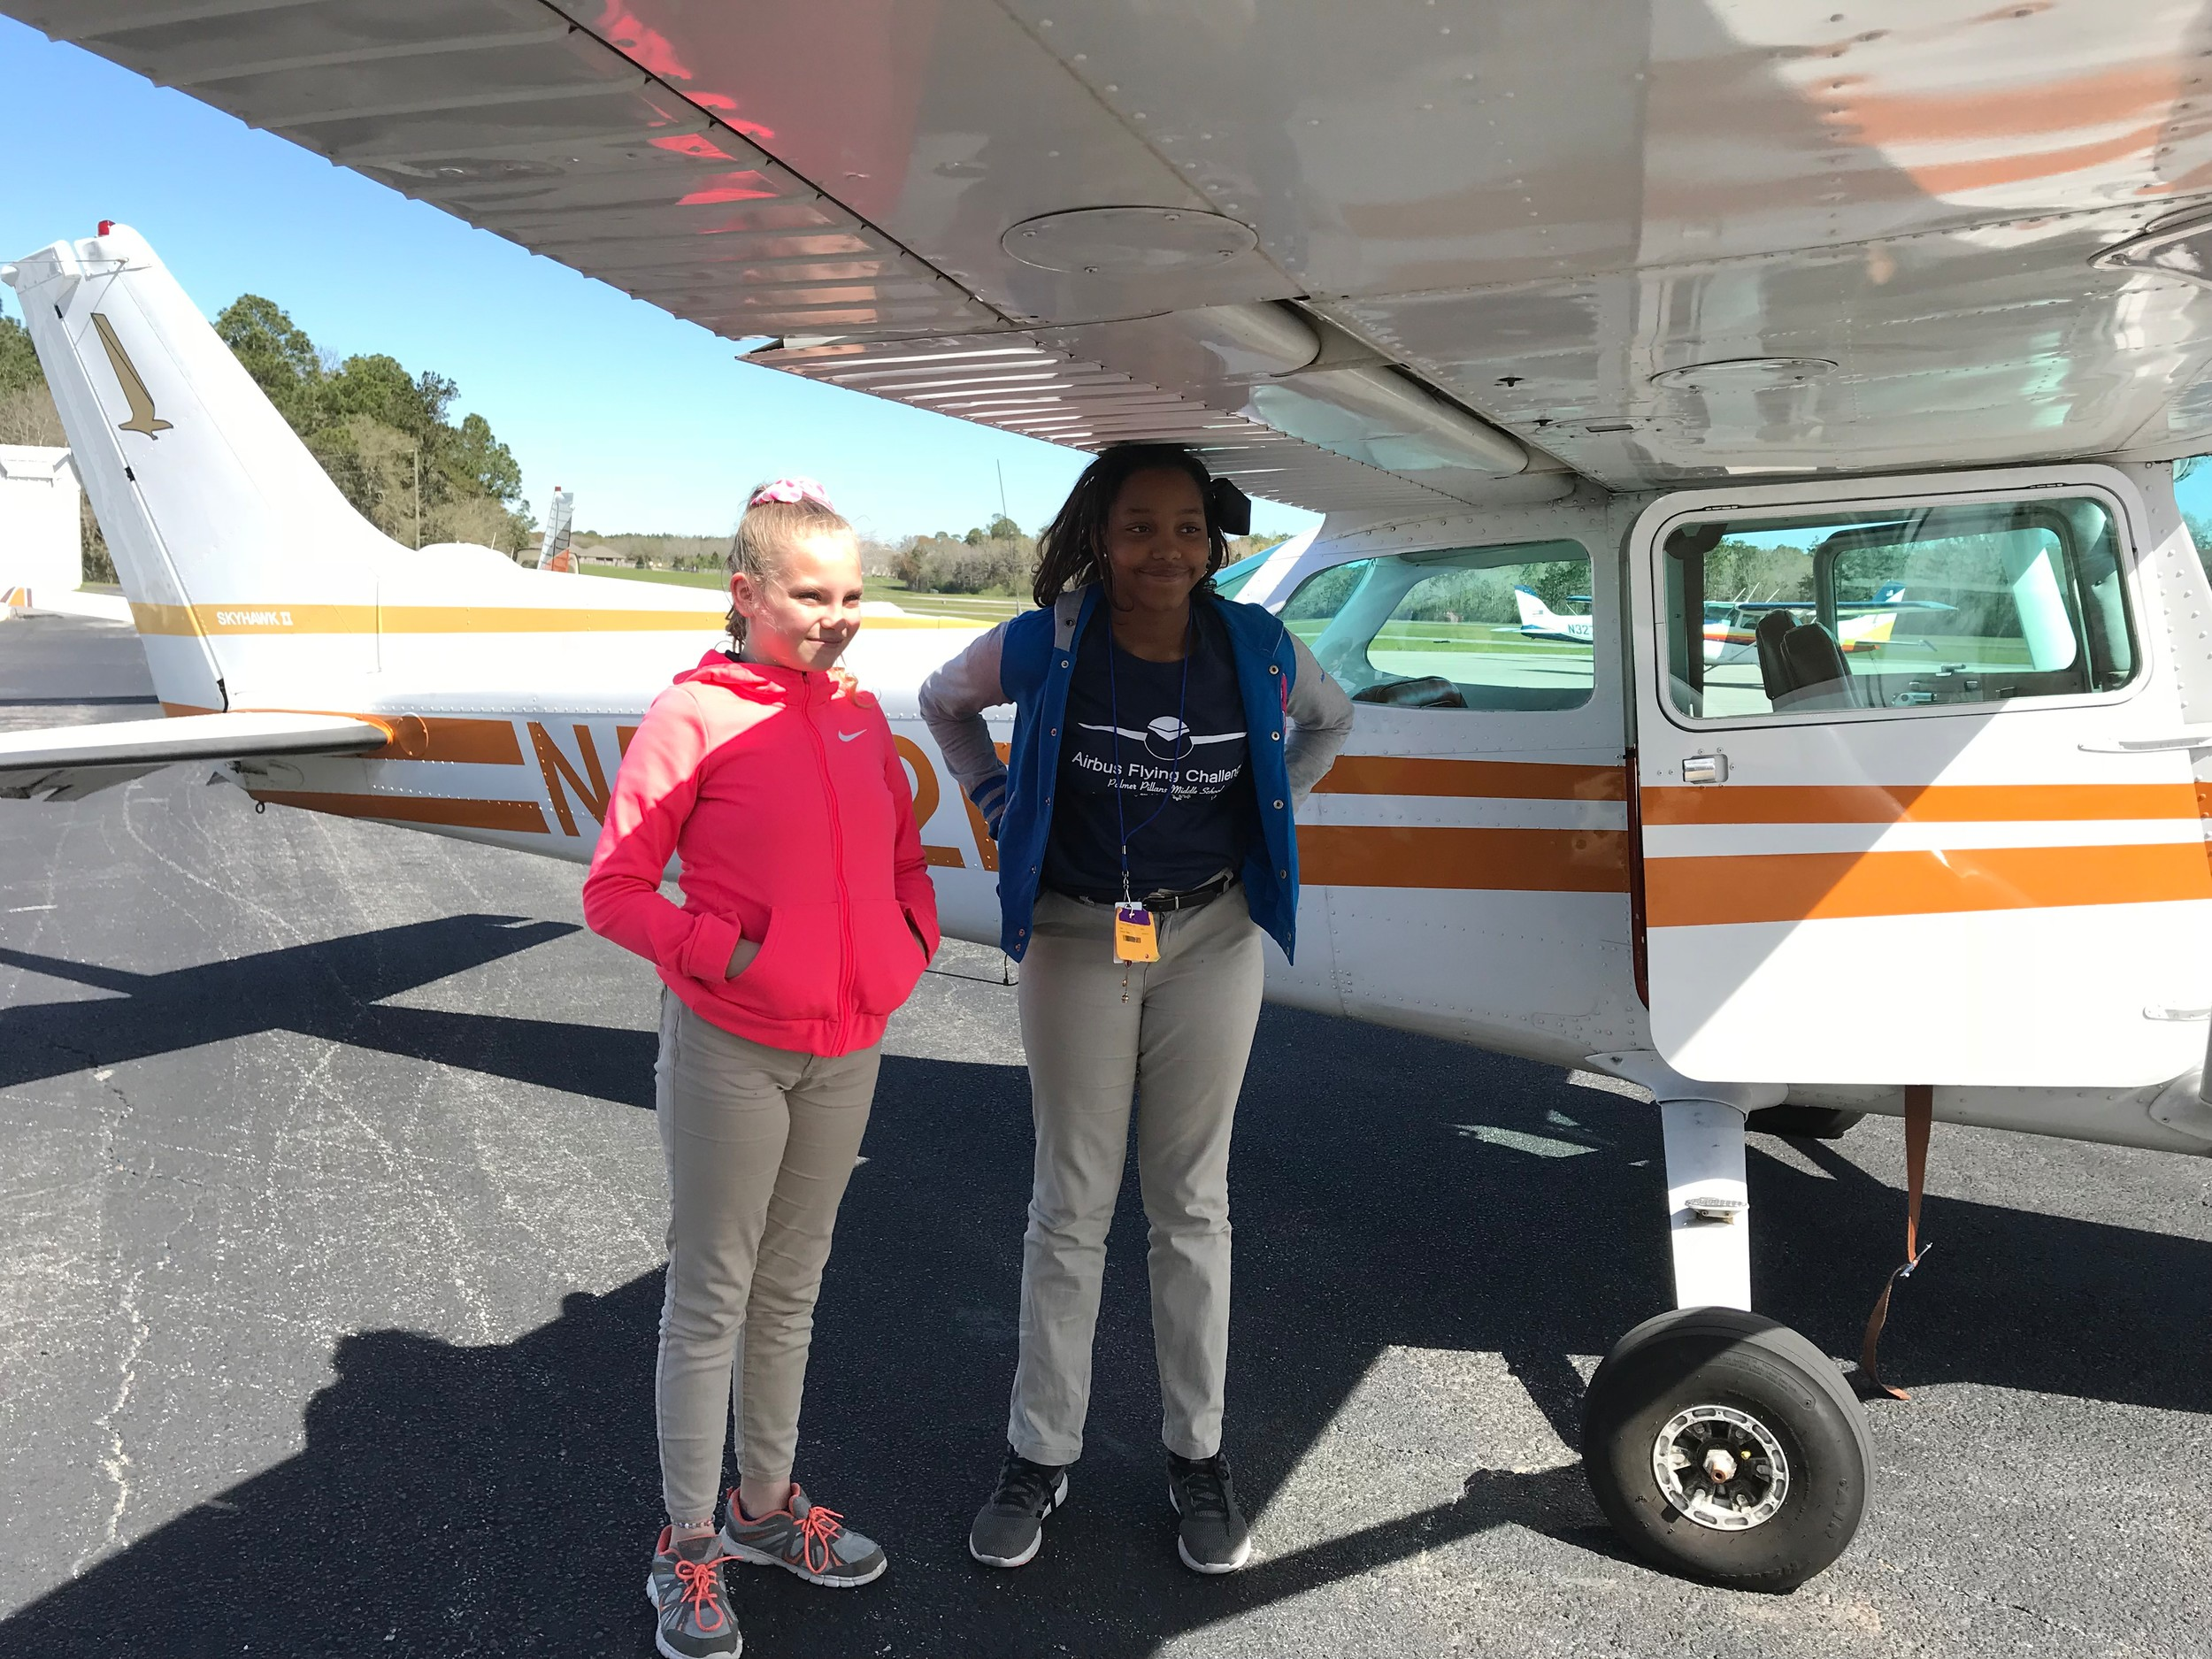 The first two student flyers and their pilot return from a trip above Foley and Gulf Shores.